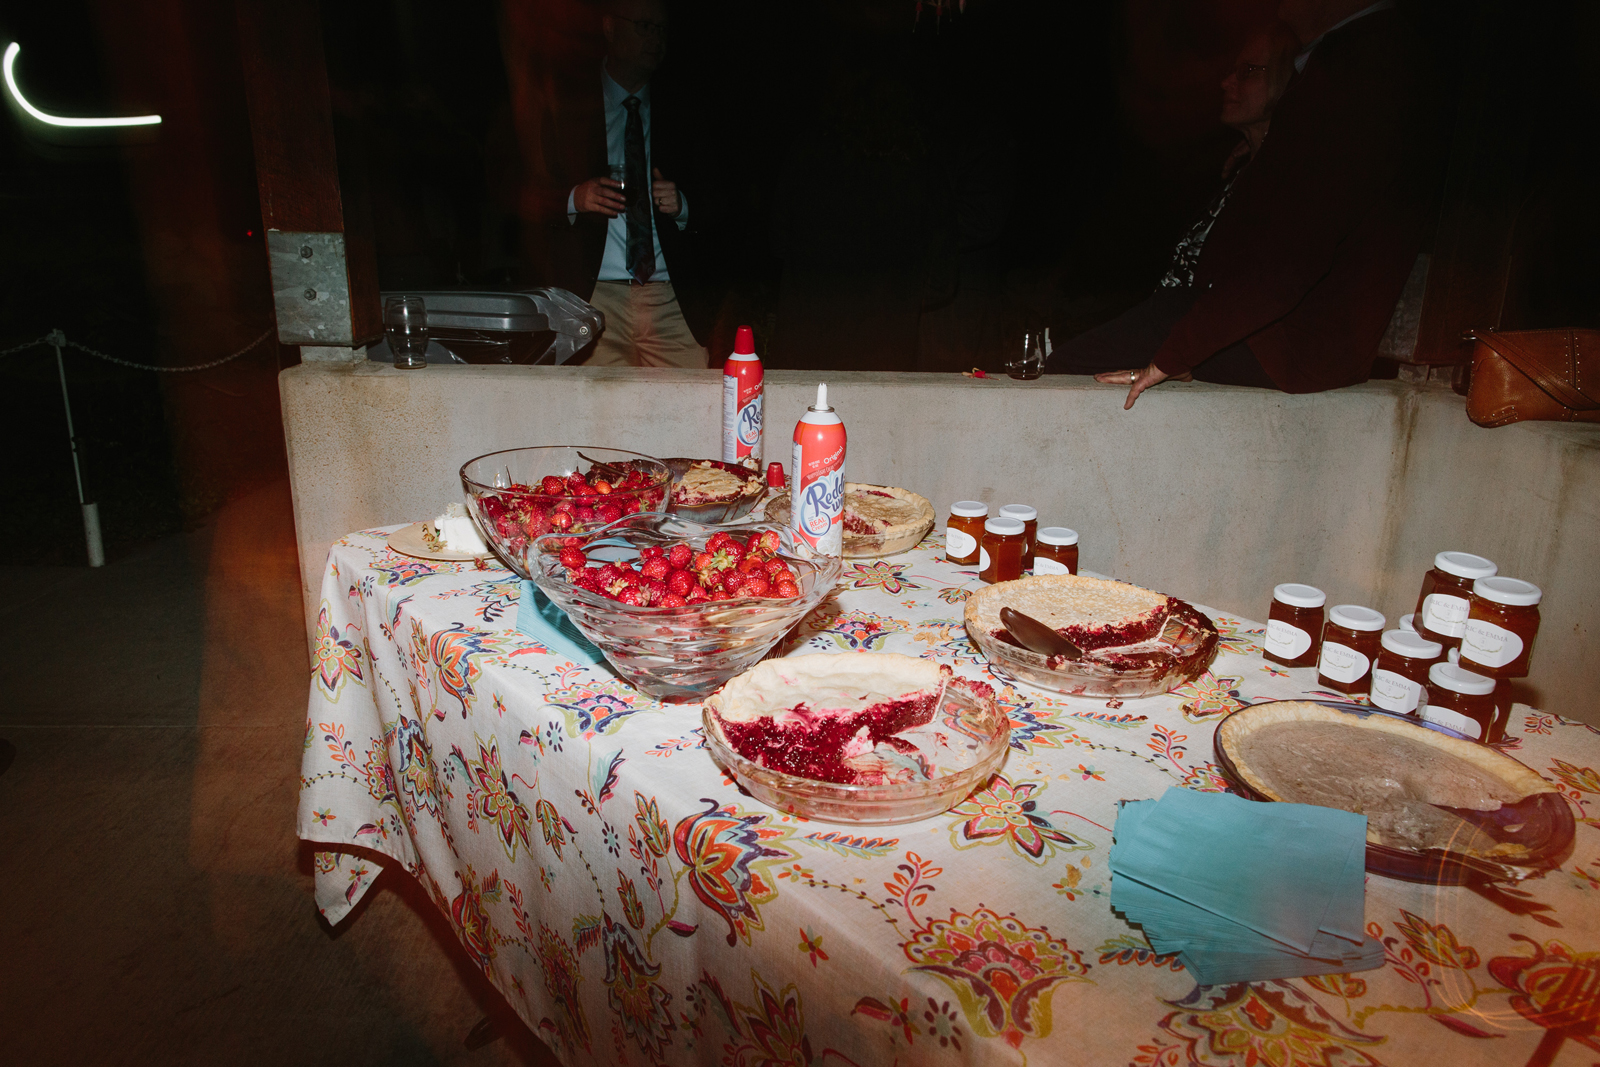 the pies sit on the table along with Reddi Whip during a wedding reception at Bridal Veil Lakes in Corbett, OR